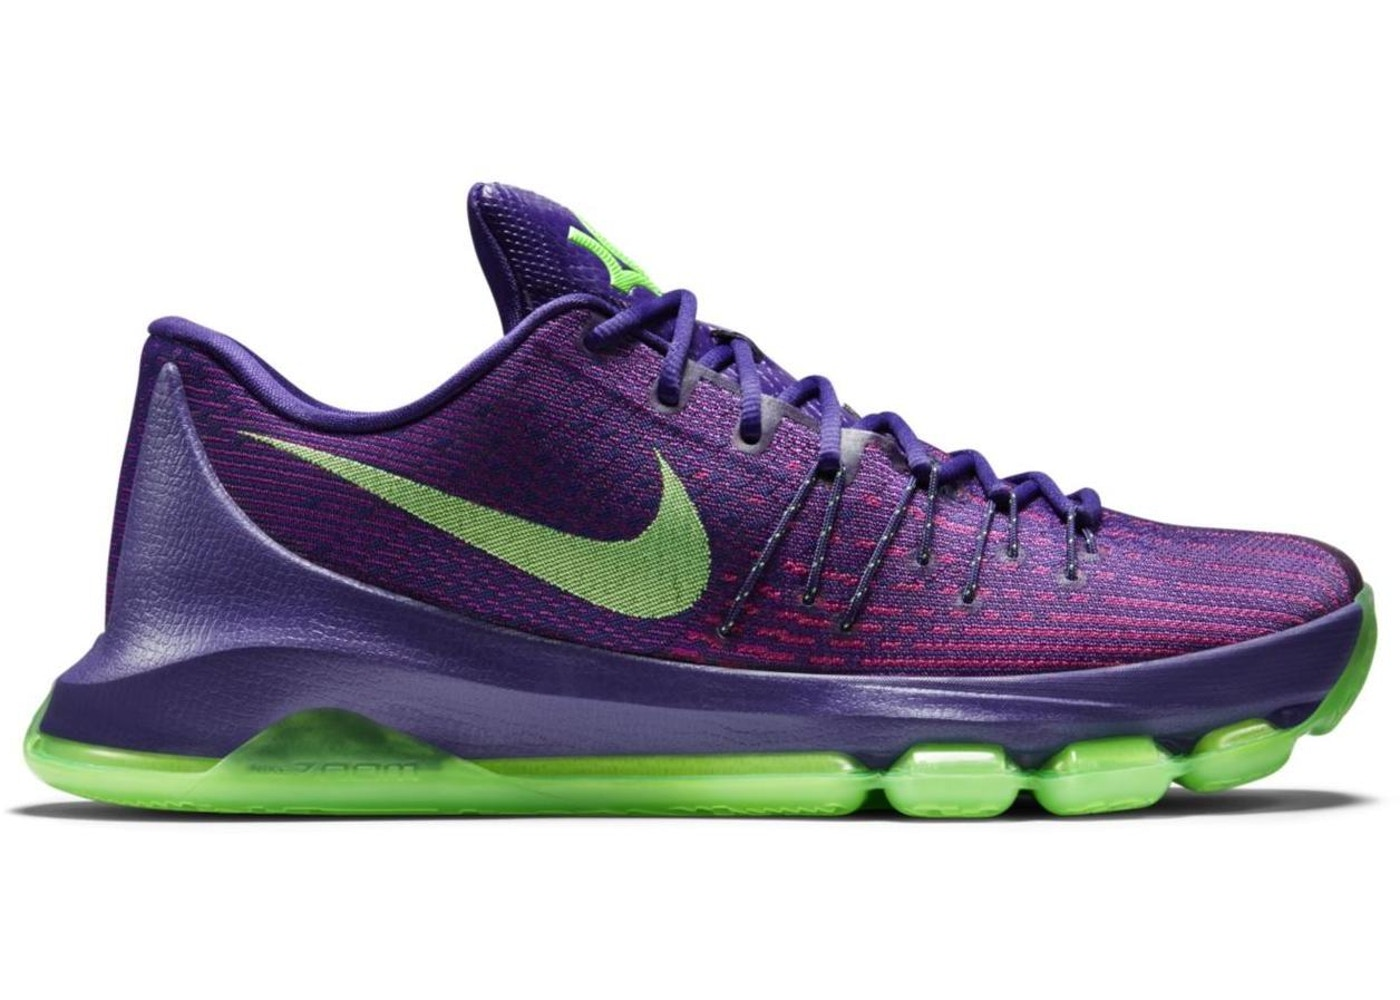 5f11953f0092 Buy Nike KD Shoes   Deadstock Sneakers